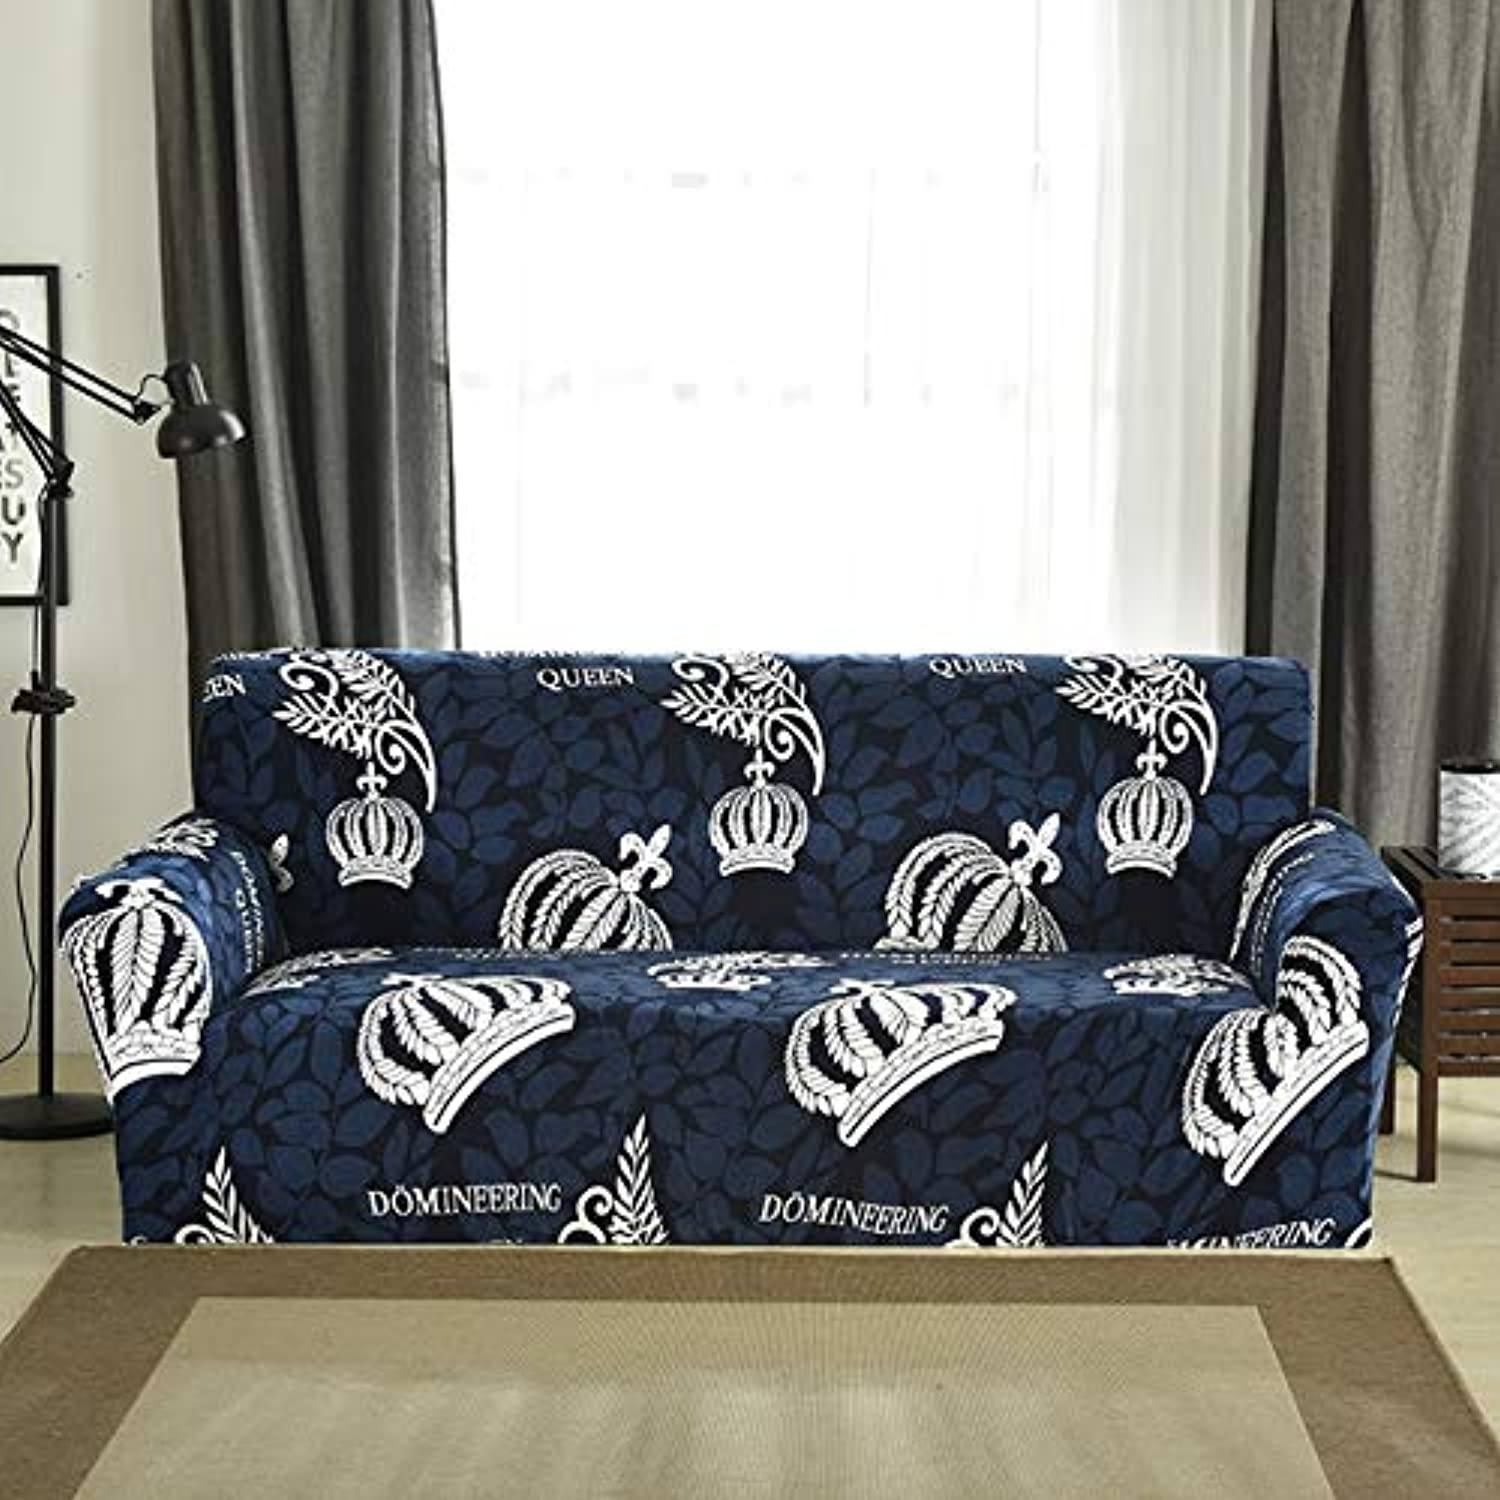 Plush fabirc Printed Sofa Cover 1 2 3 4 seat Thick Slipcovers Couch Covers Stretch Elastic Cheap Sofa Covers Towel wrap Covering   6910, AB 90-140cm